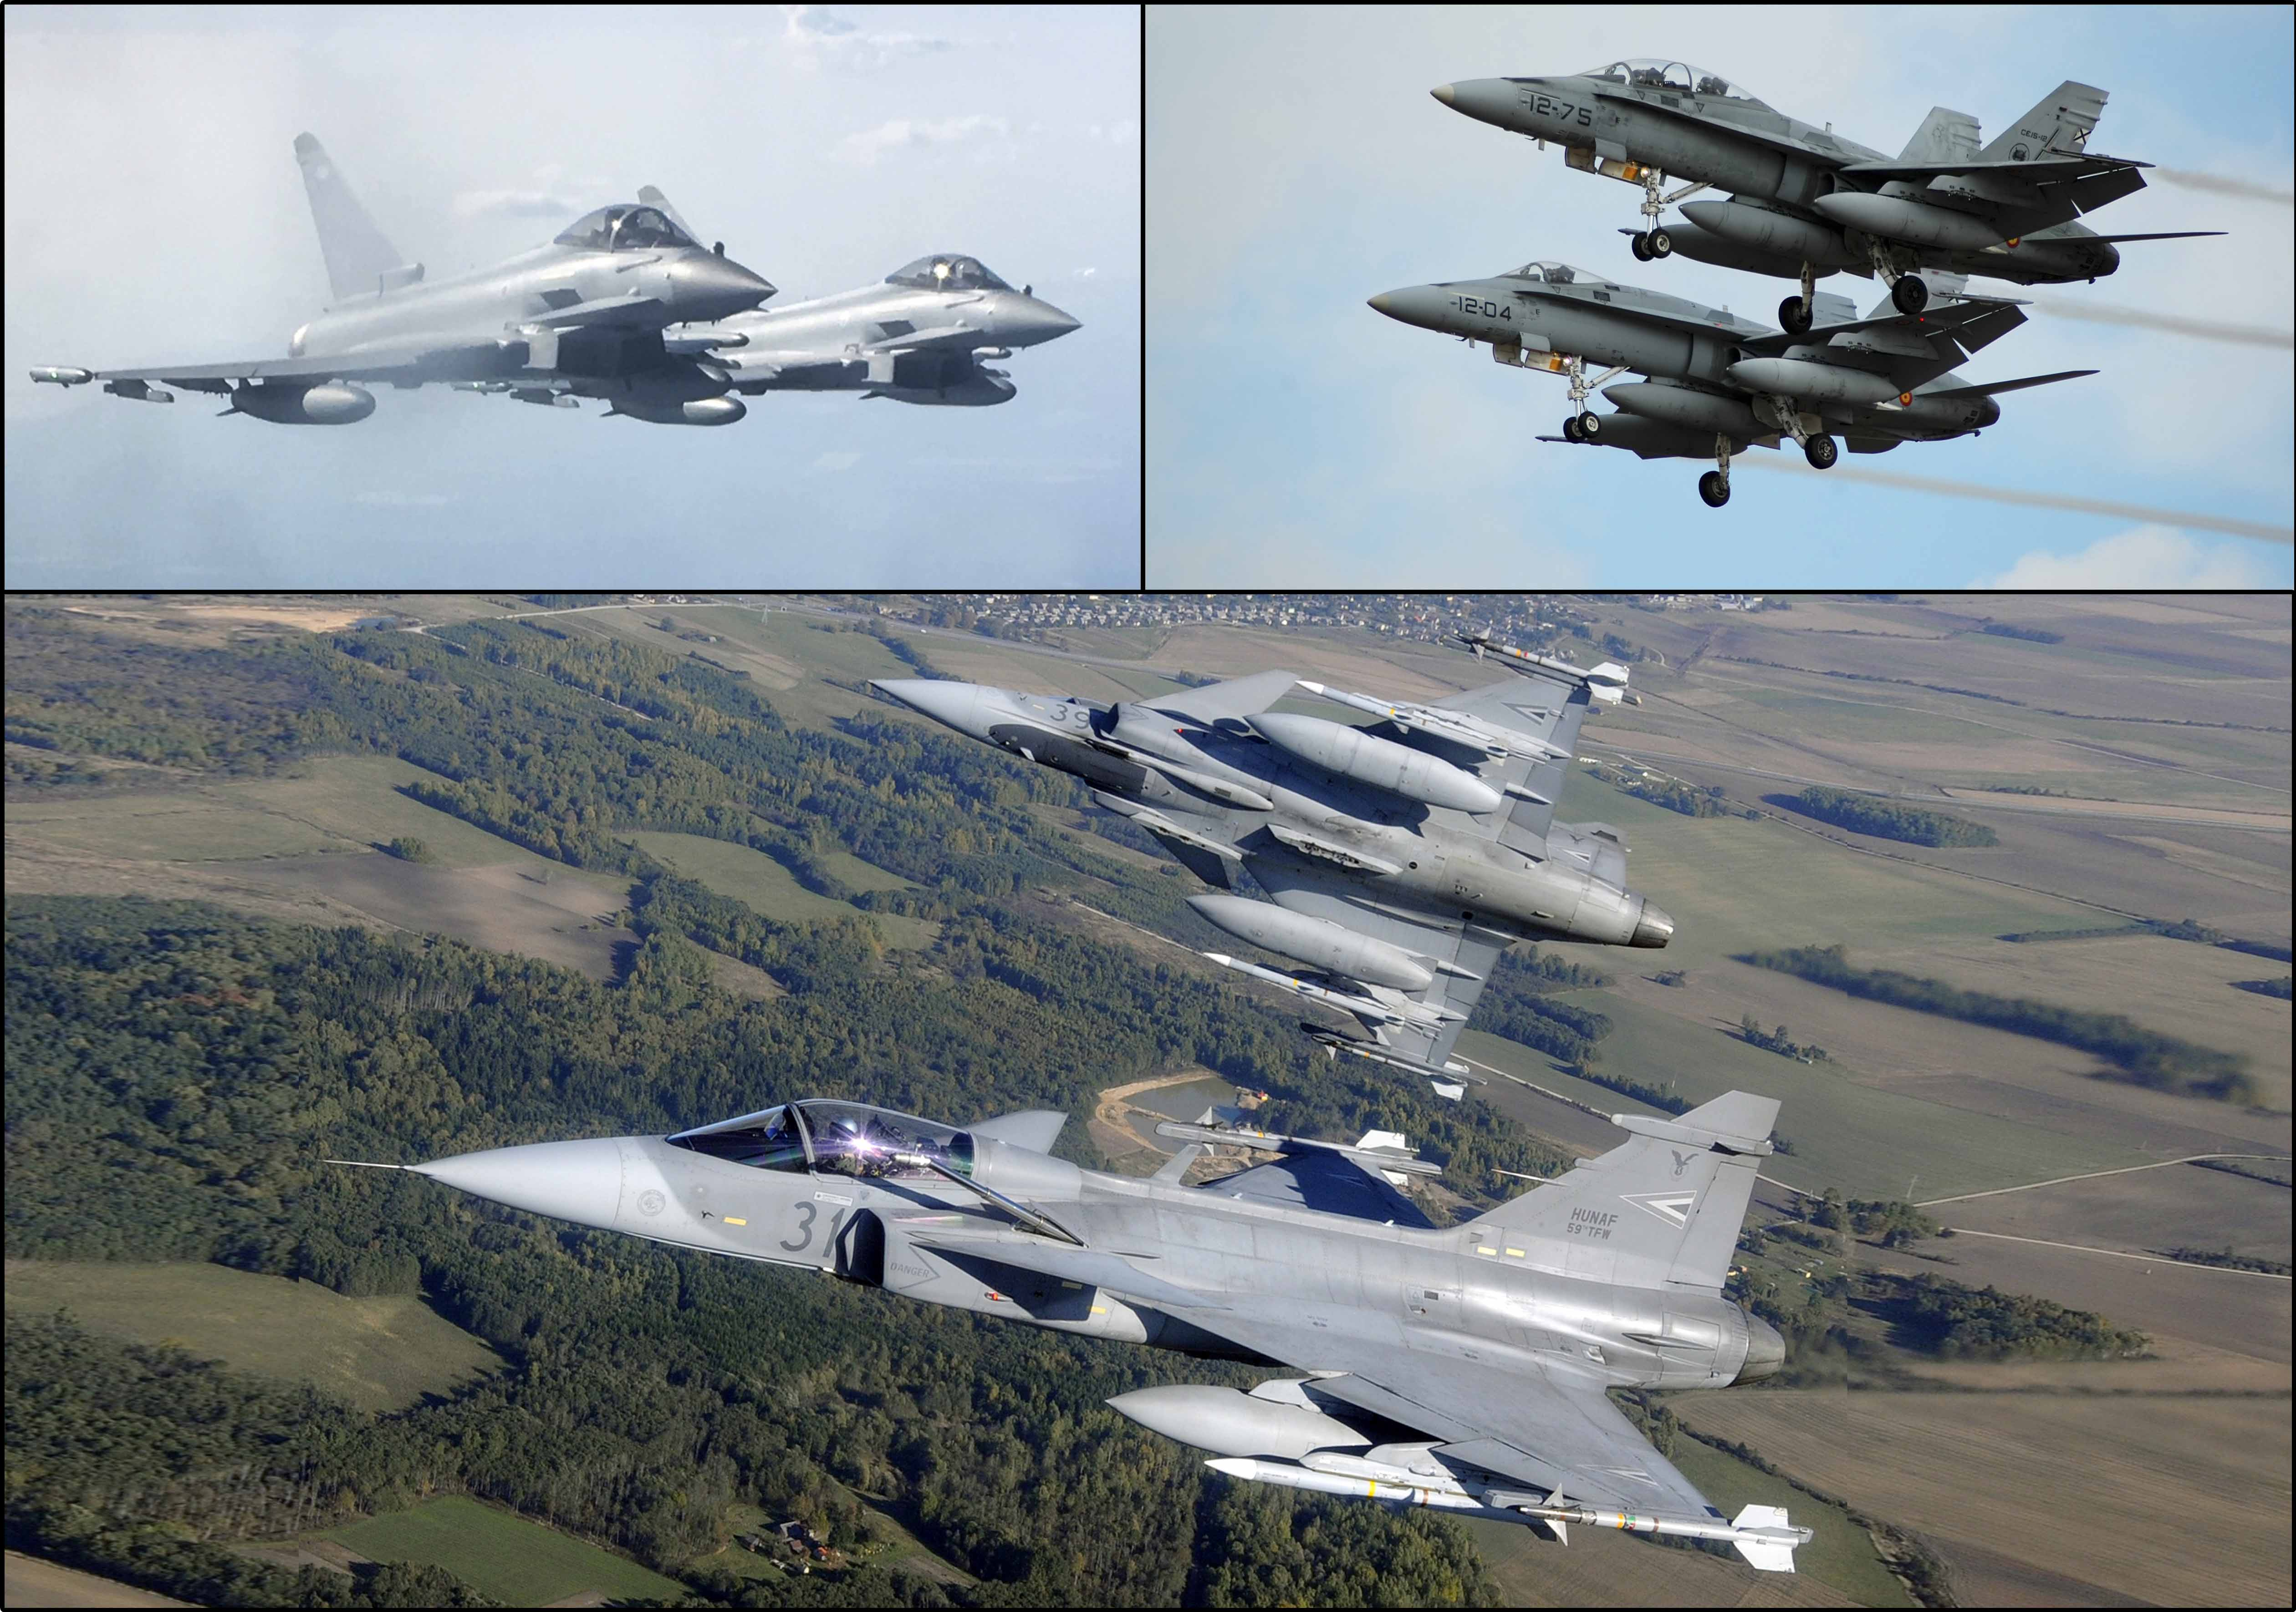 Hungary, augmented by the United Kingdom and Spain, will lead 50th NATO Baltic Air Policing detachment